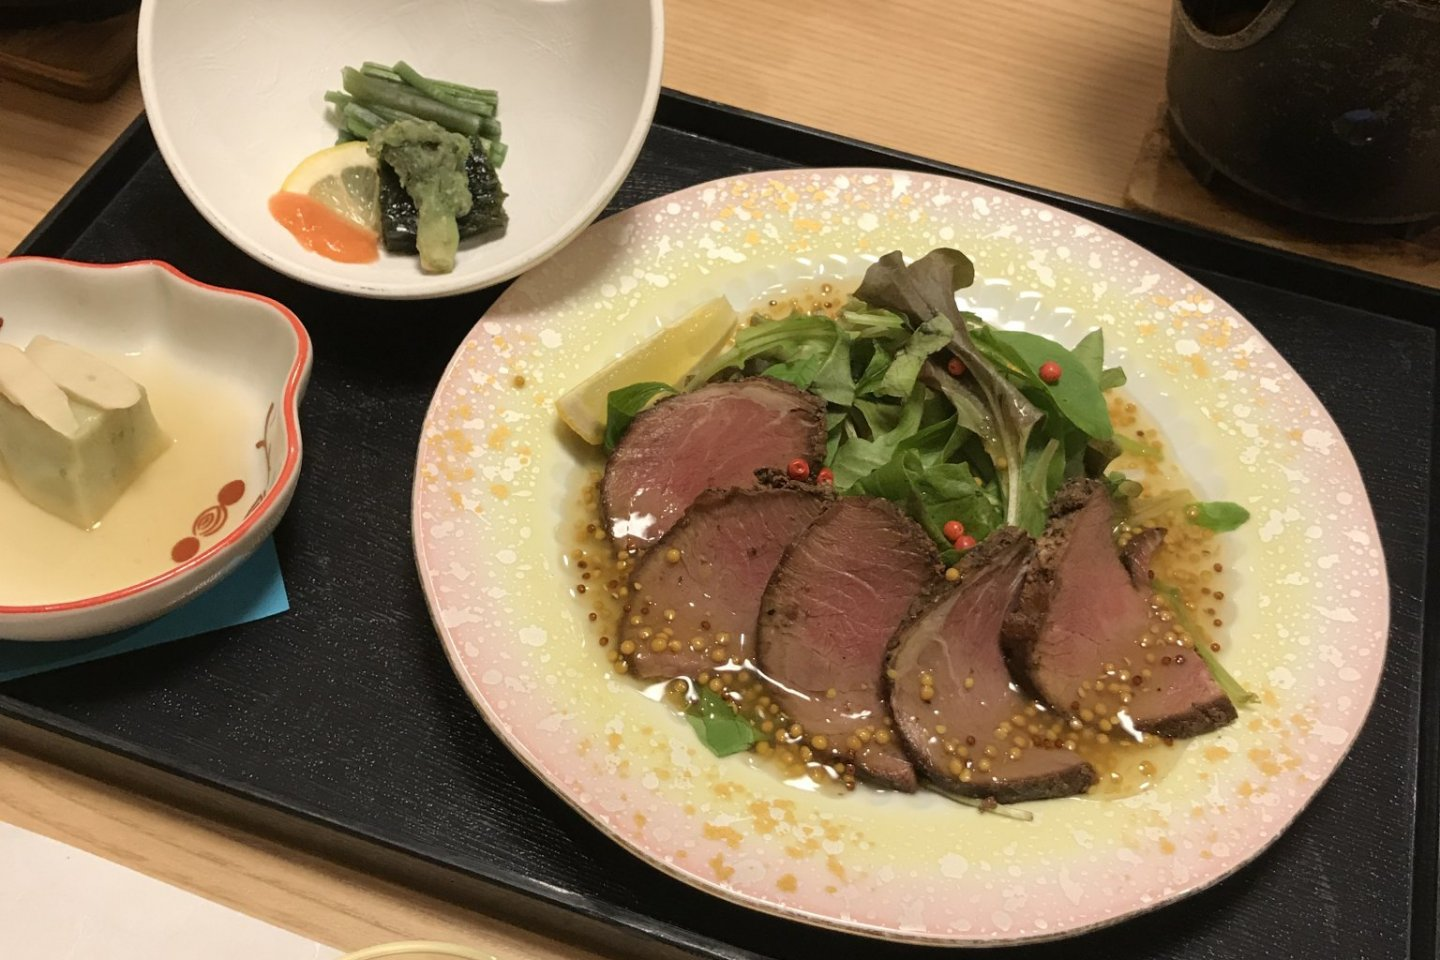 Meals here are served kaiseki style, and they can cater to your preferences if you're not a huge seafood fan